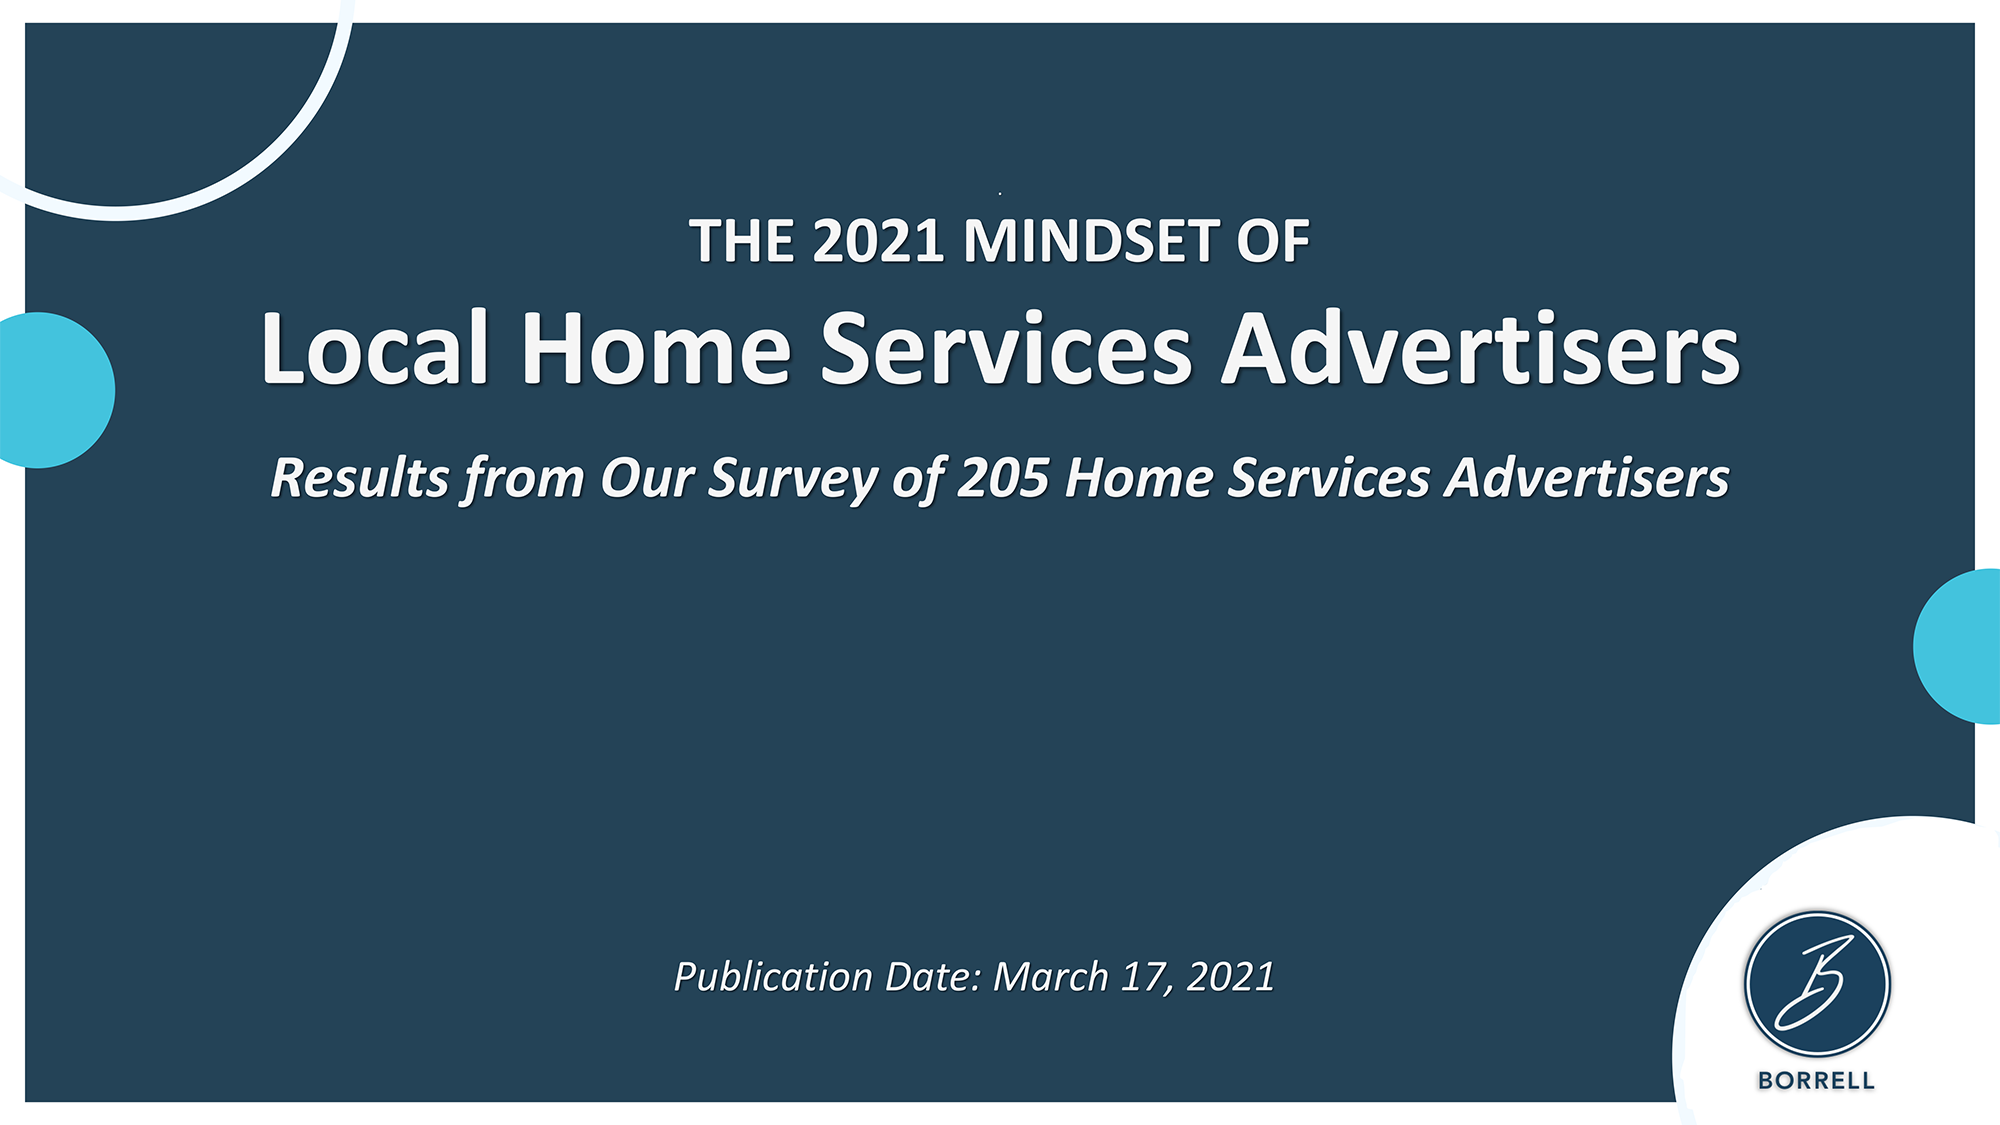 The 2021 Mindset of Local Home Services Advertisers